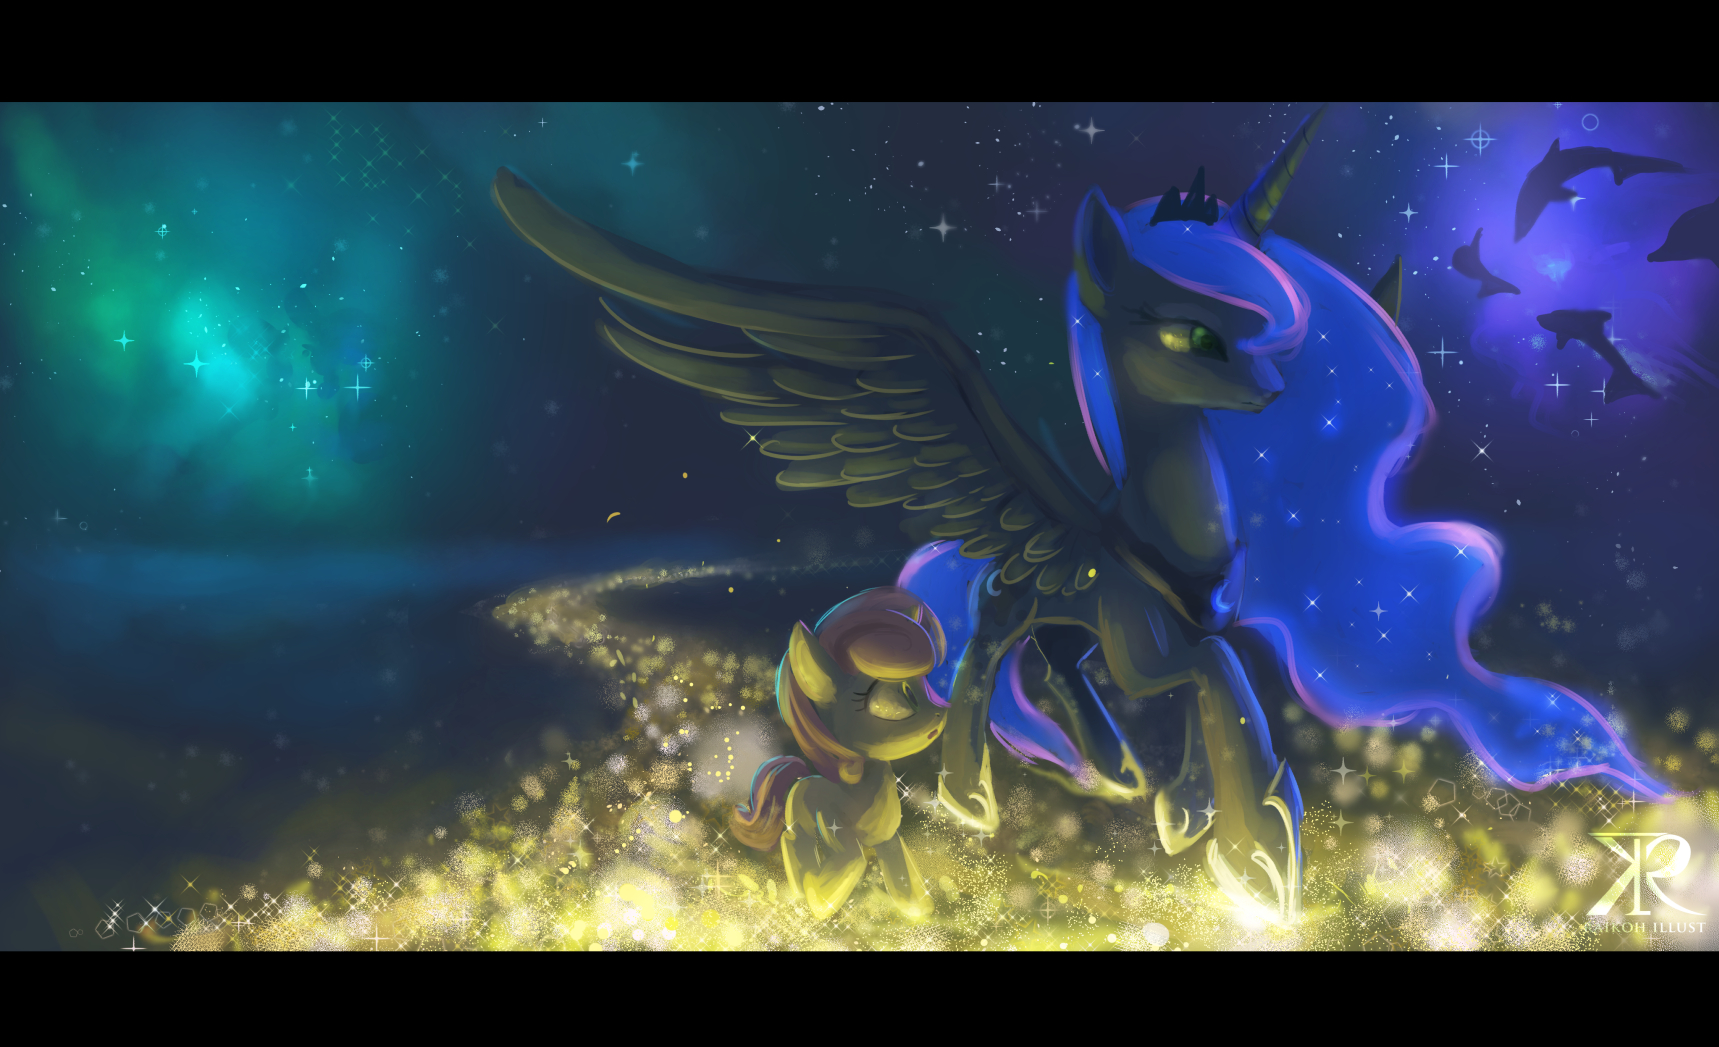 Trotting in the Dream world by Raikoh-illust